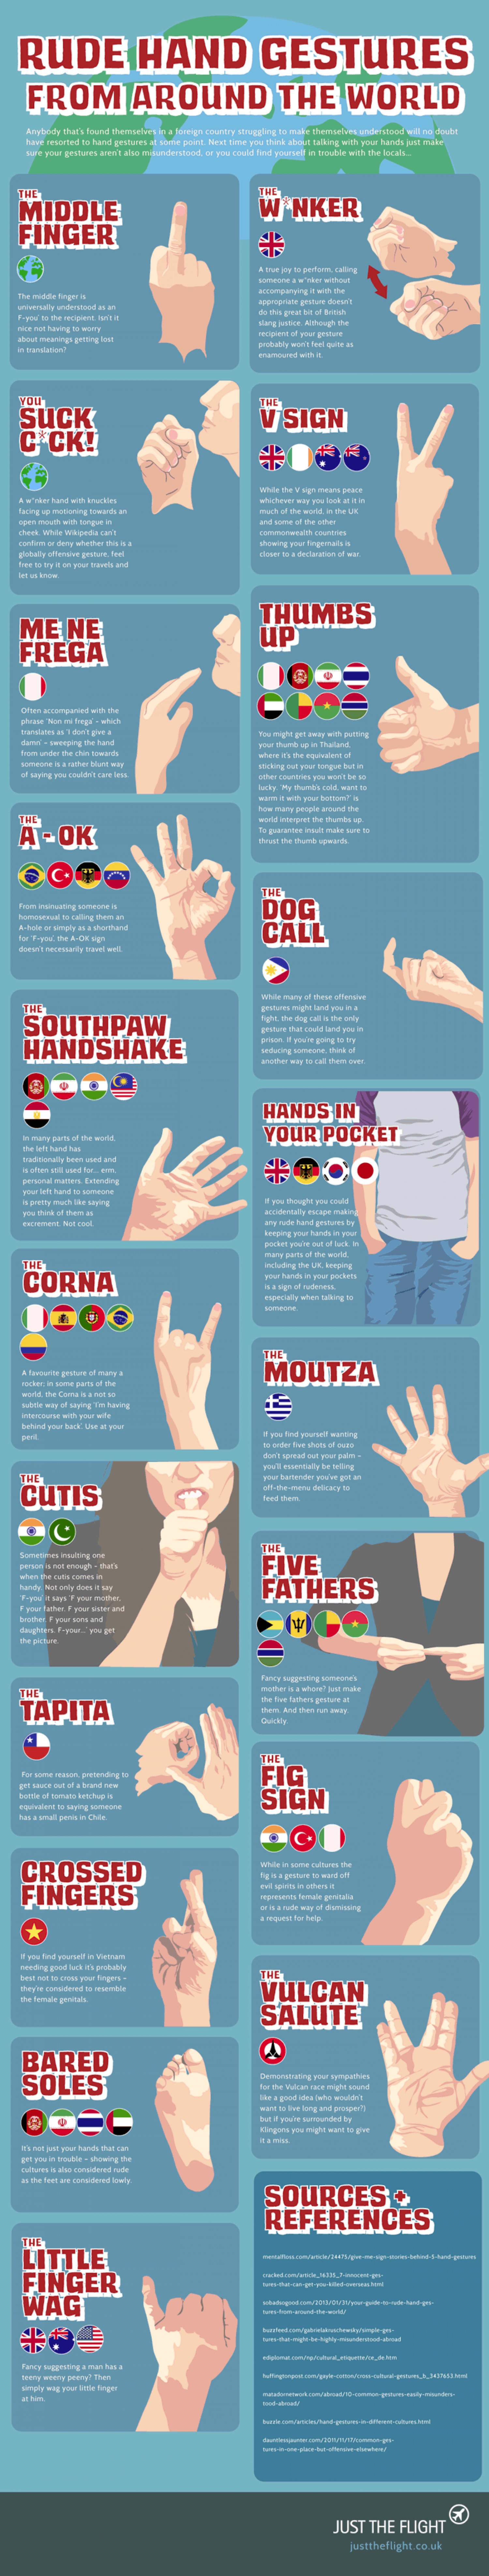 rude-hand-gestures-from-around-the-world_533926556232e_w1500